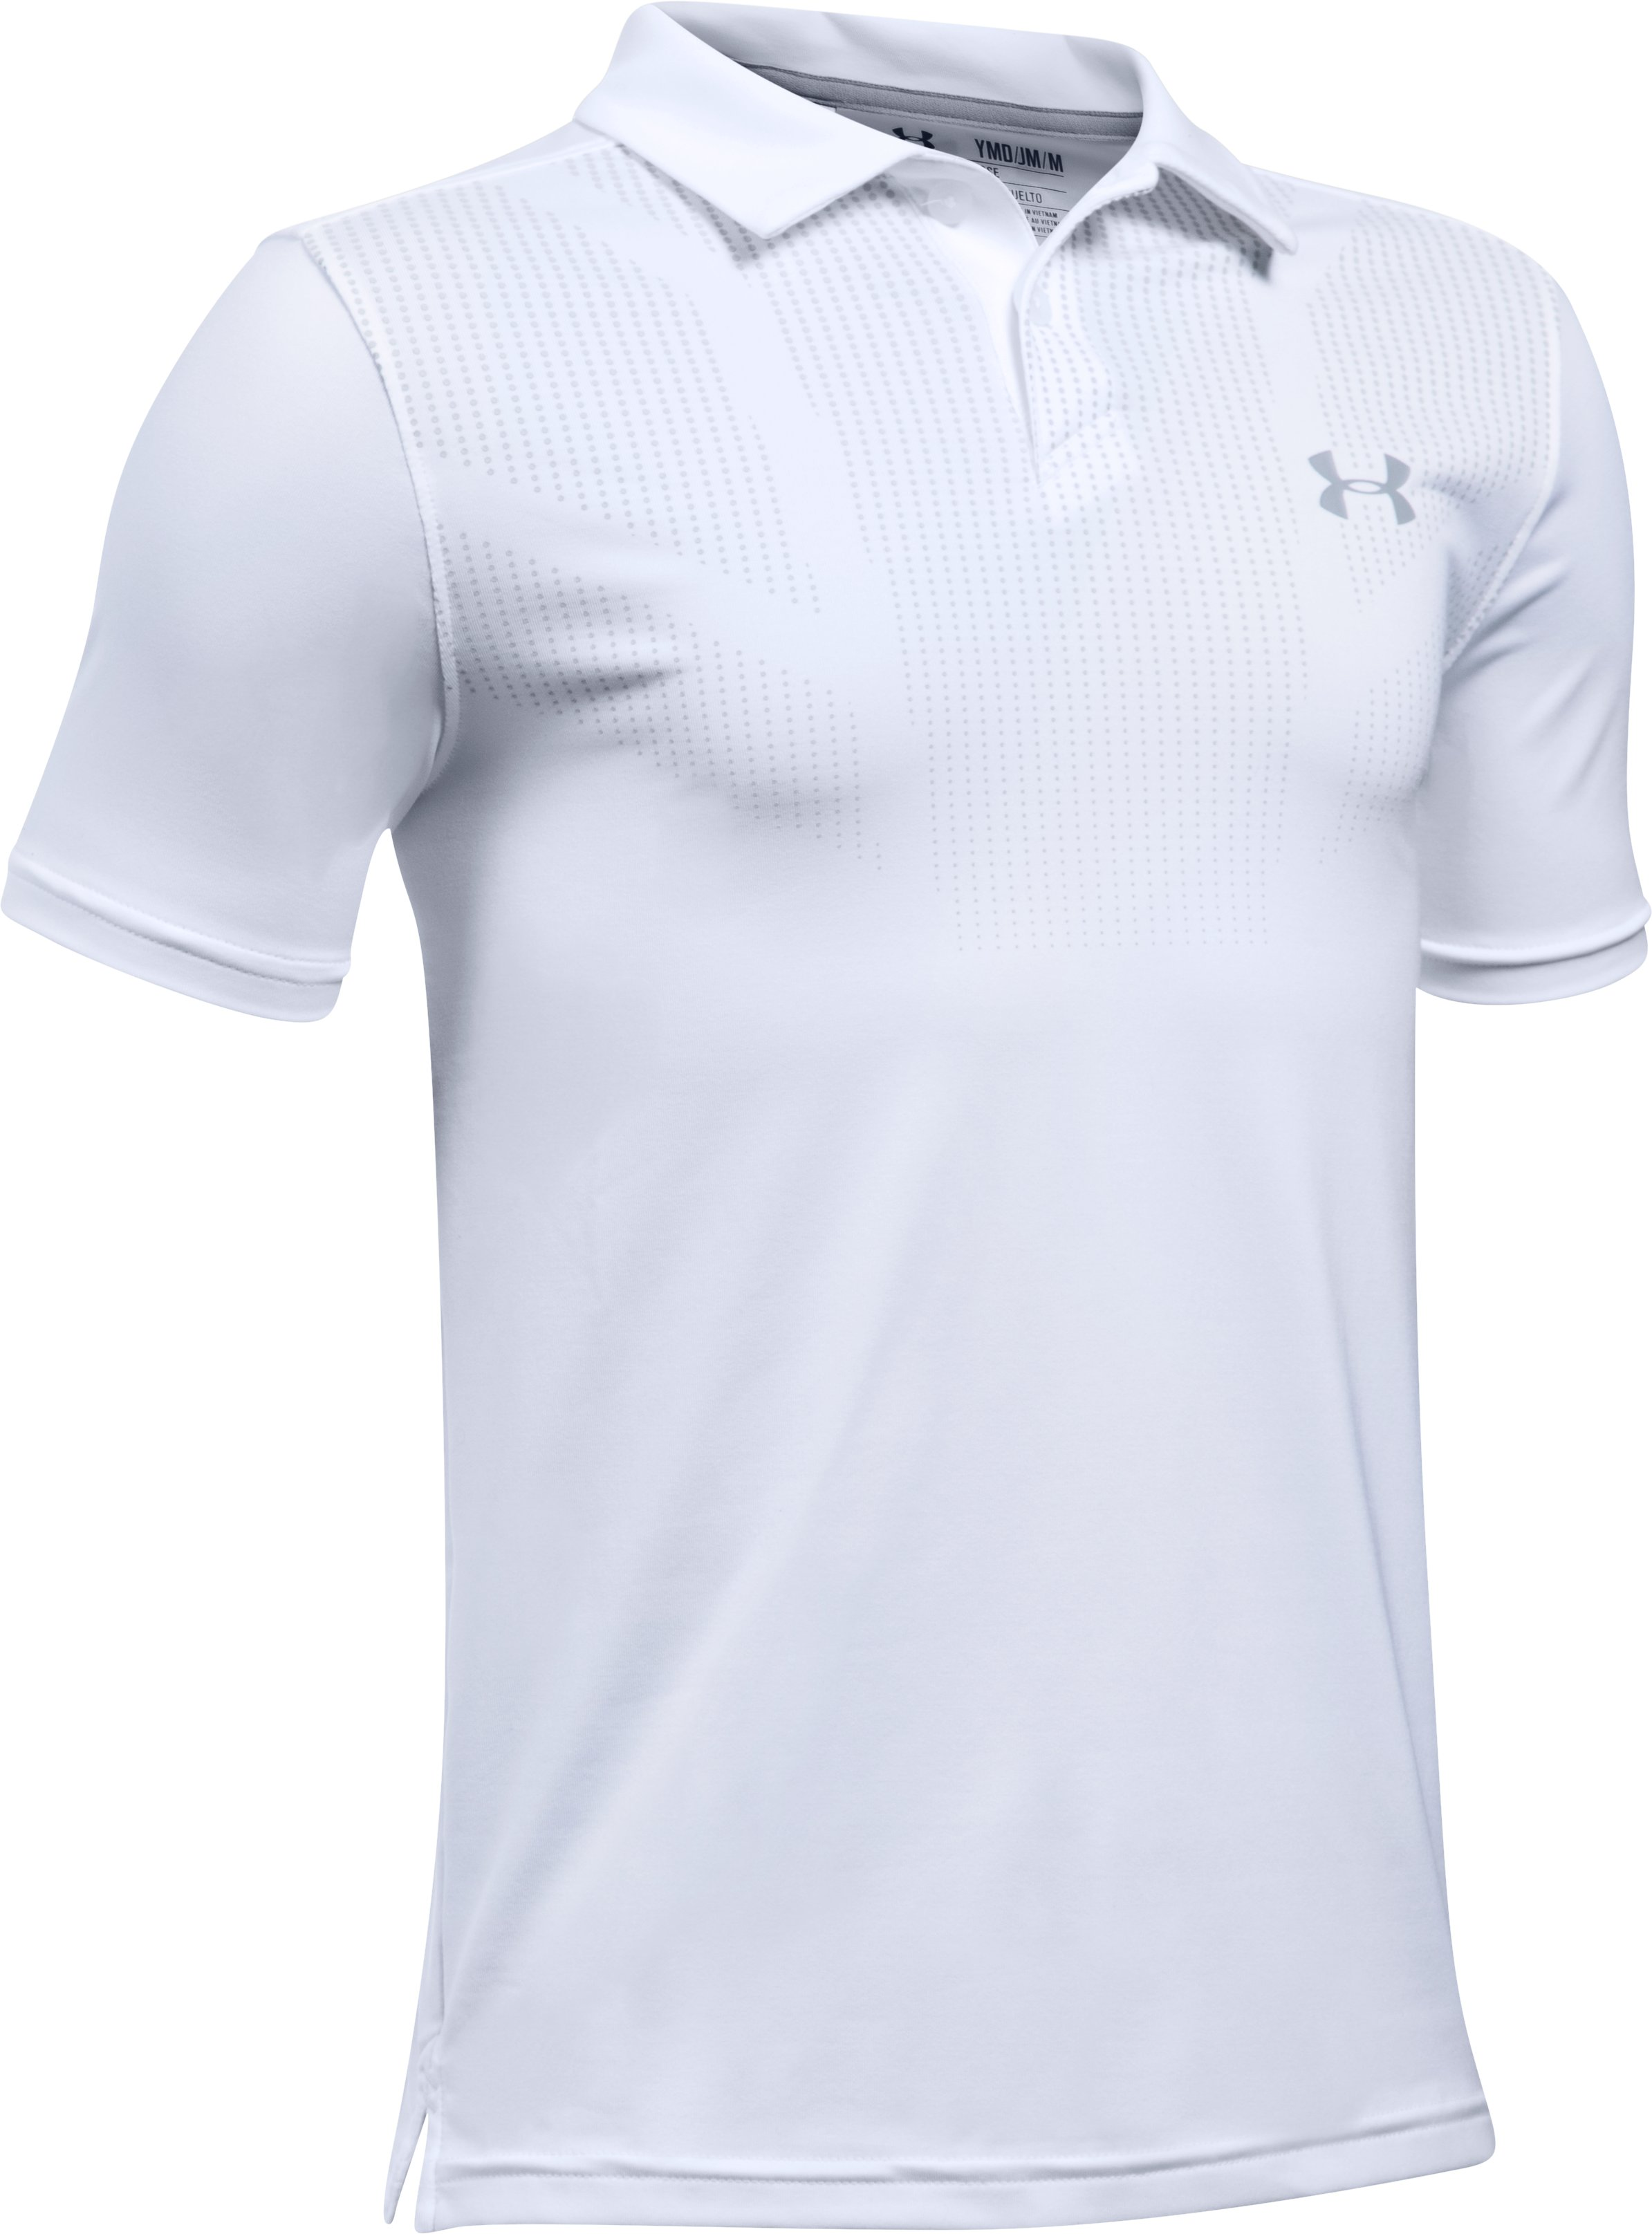 Boys' UA Tour Polo Shirt, White